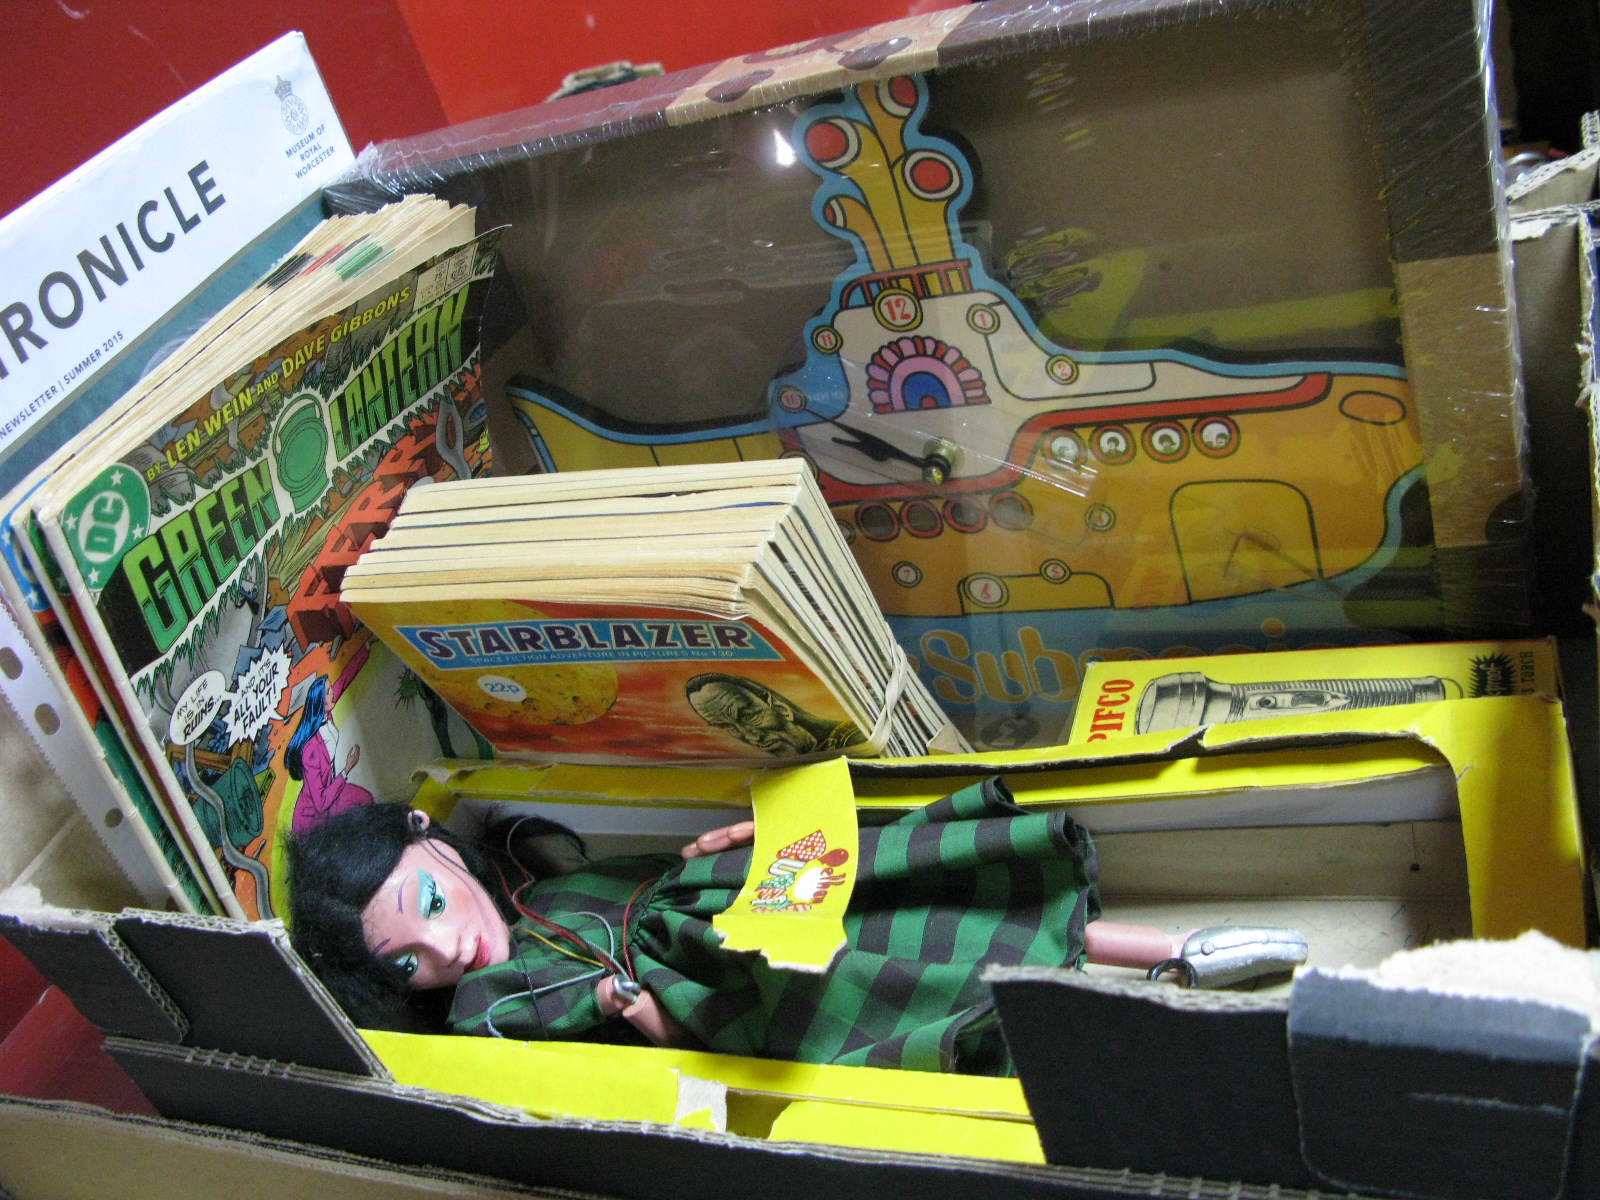 Lot 1008 - Pelham Puppet of Lady in Green & Black Check Dress, comics, yellow submarine clock,Henry Sandon